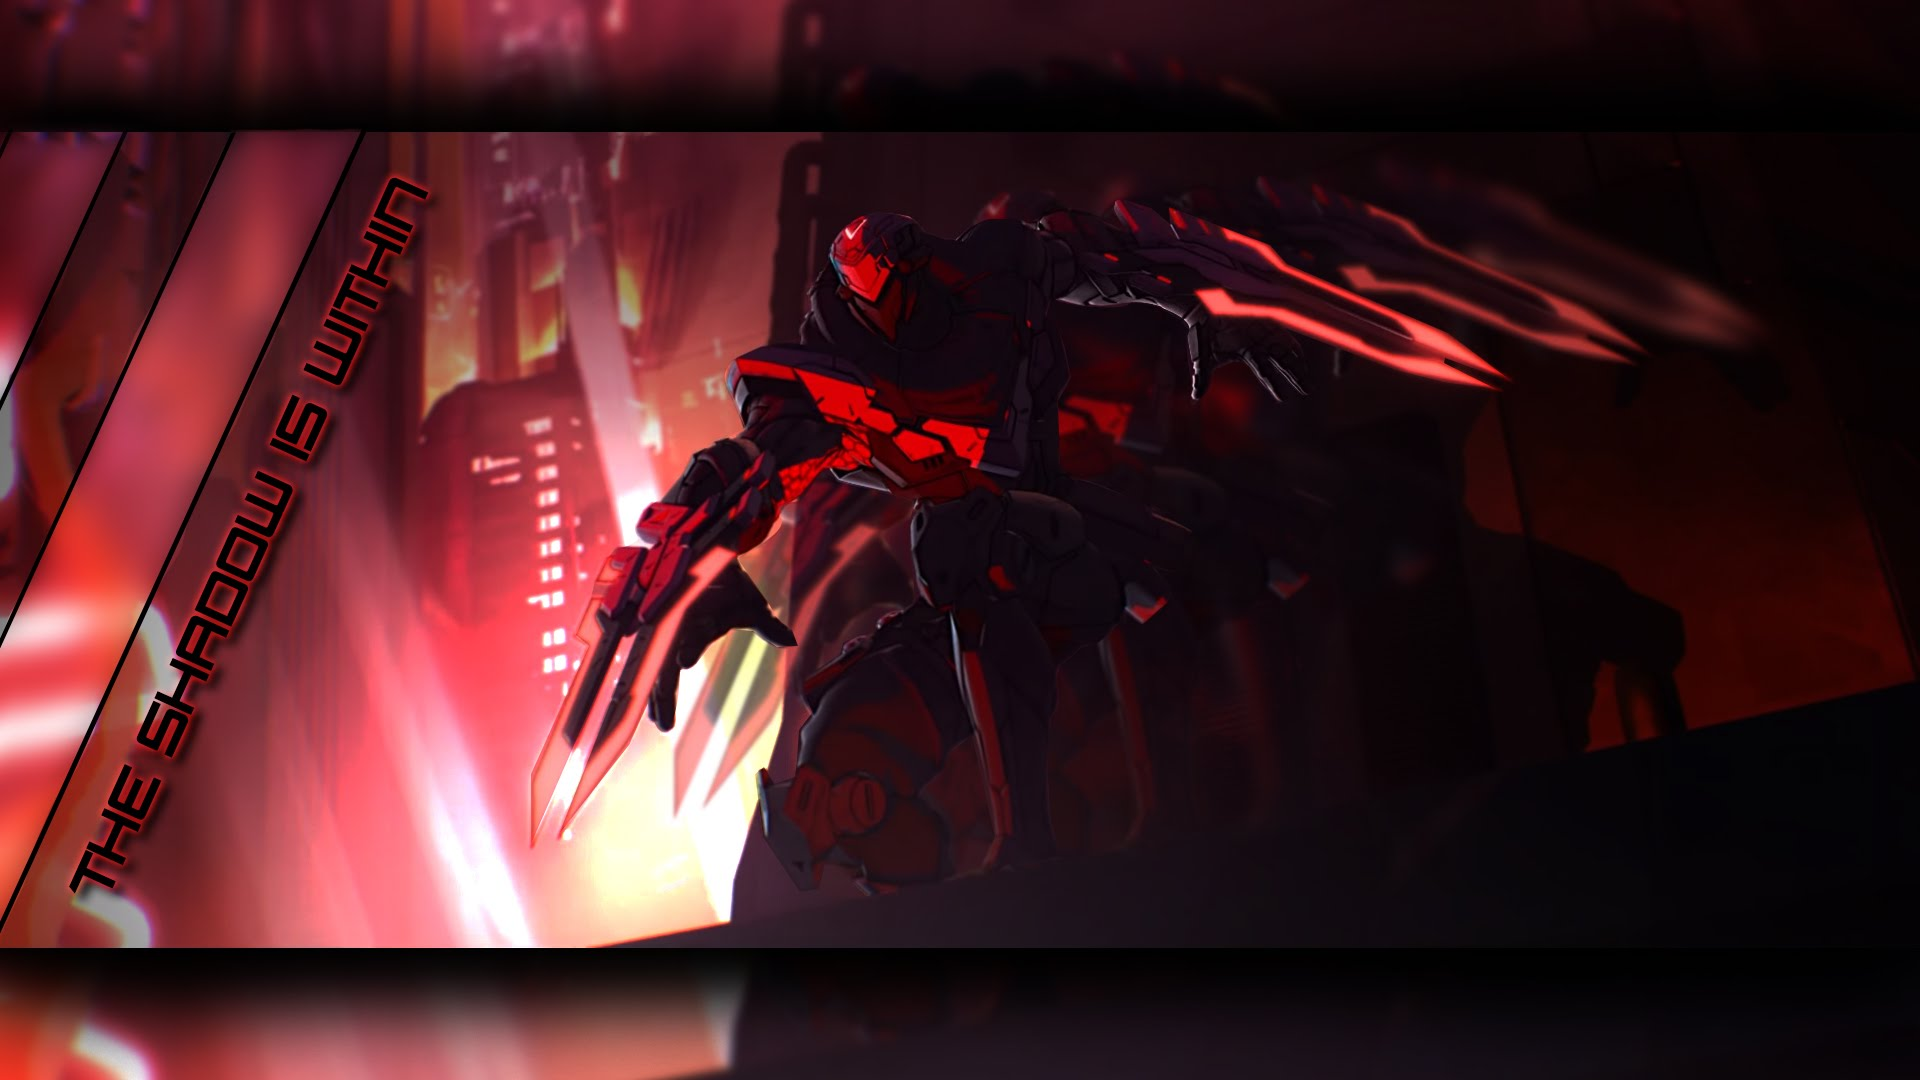 Zed Wallpapers Download Free